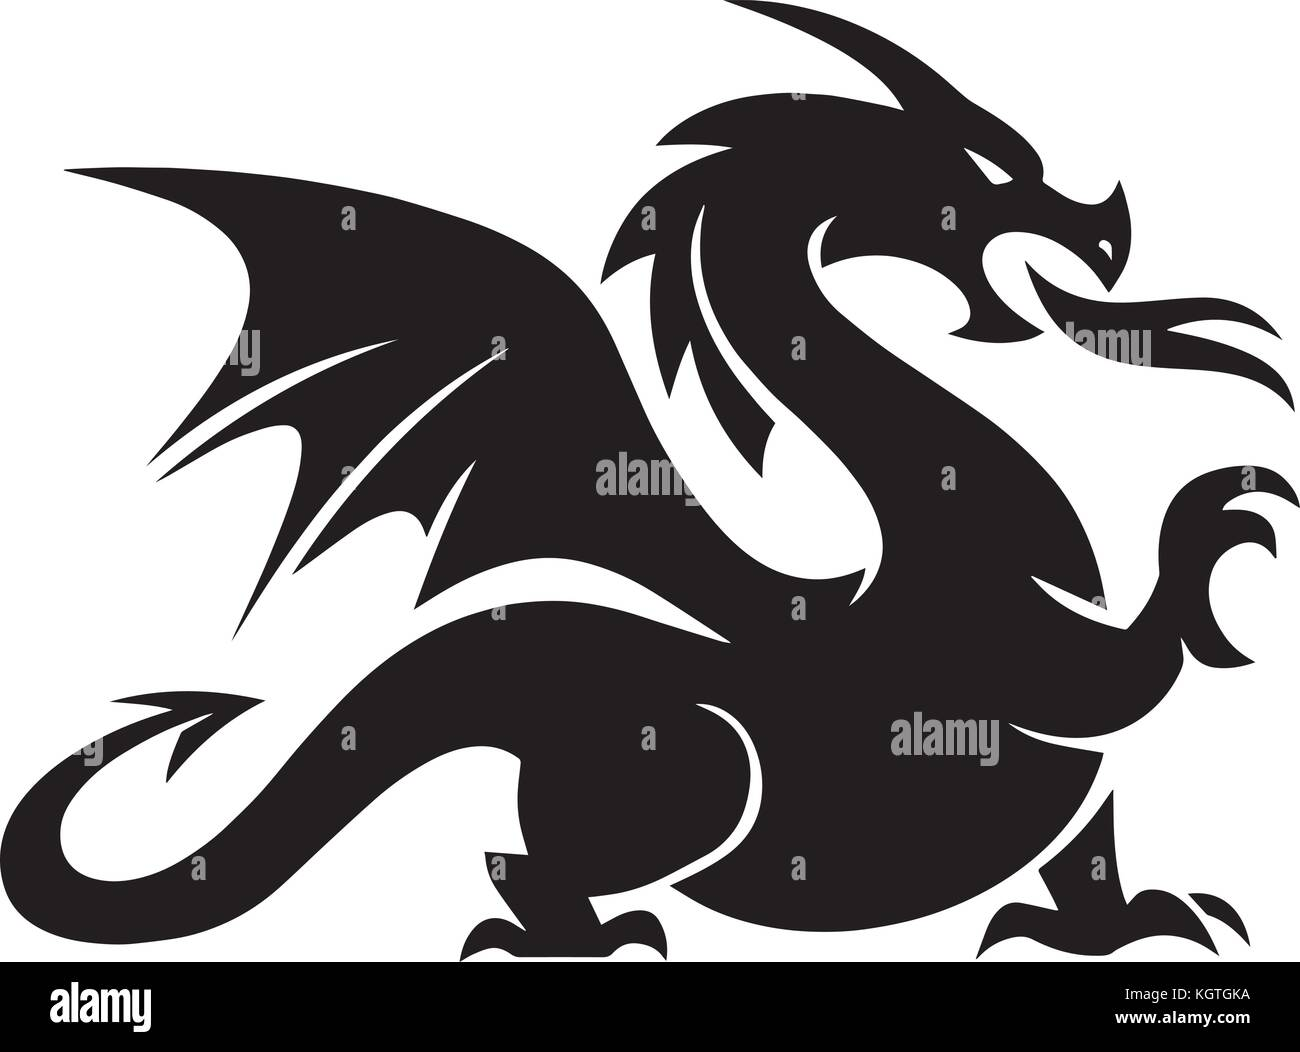 How to breed heraldic dragon - Dragon Vector Design Stock Image